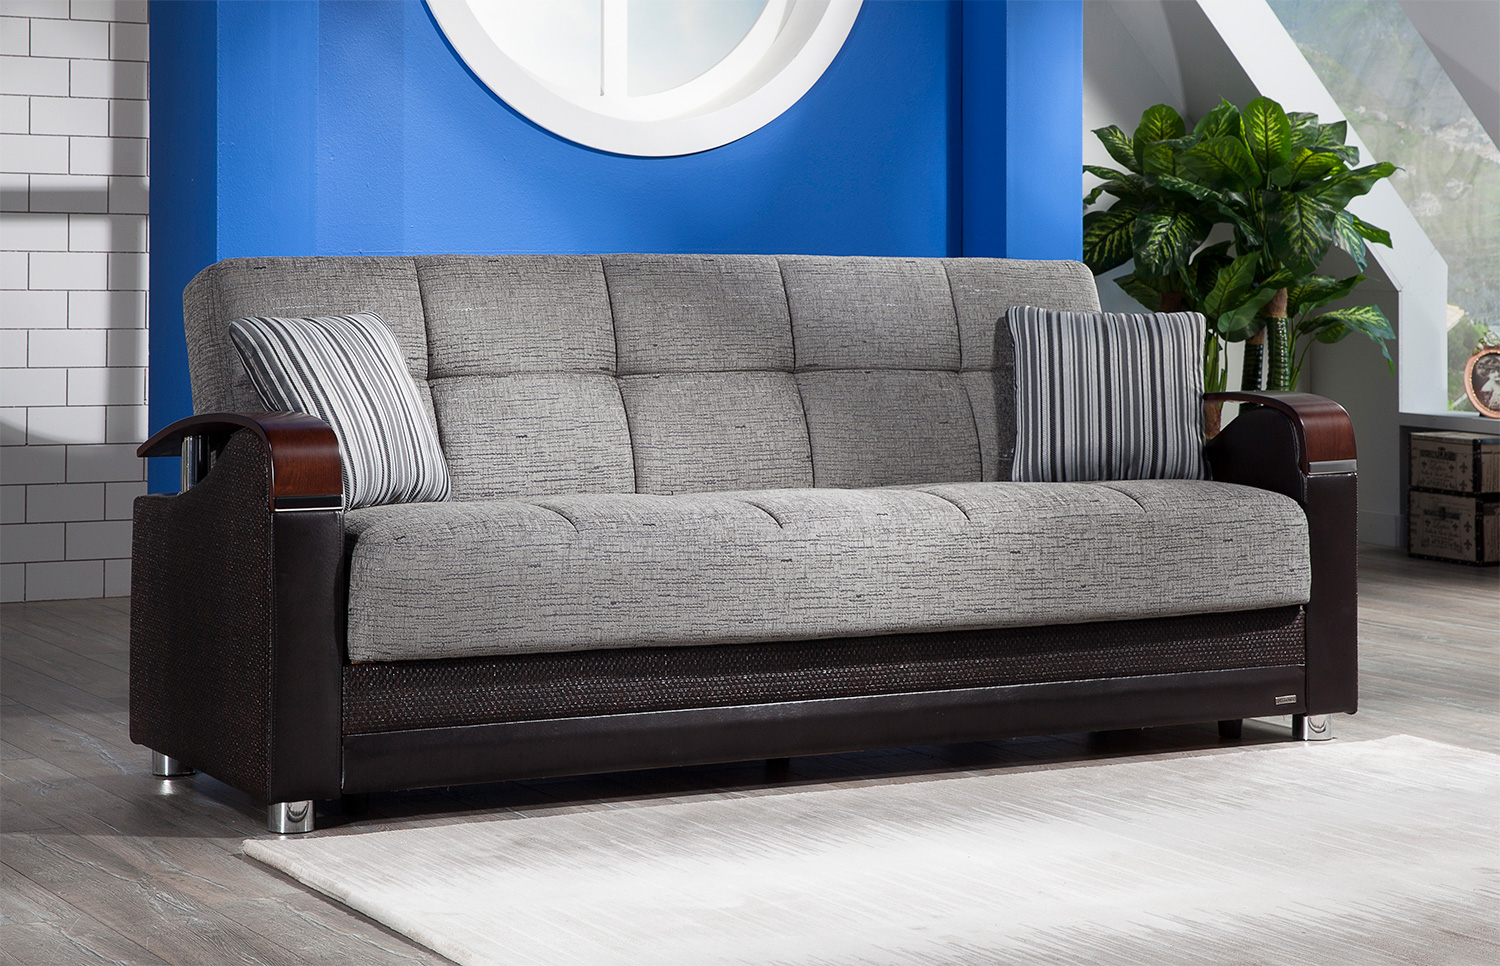 Luna Fulya Gray Convertible Sofa Bed With Storage Marjen